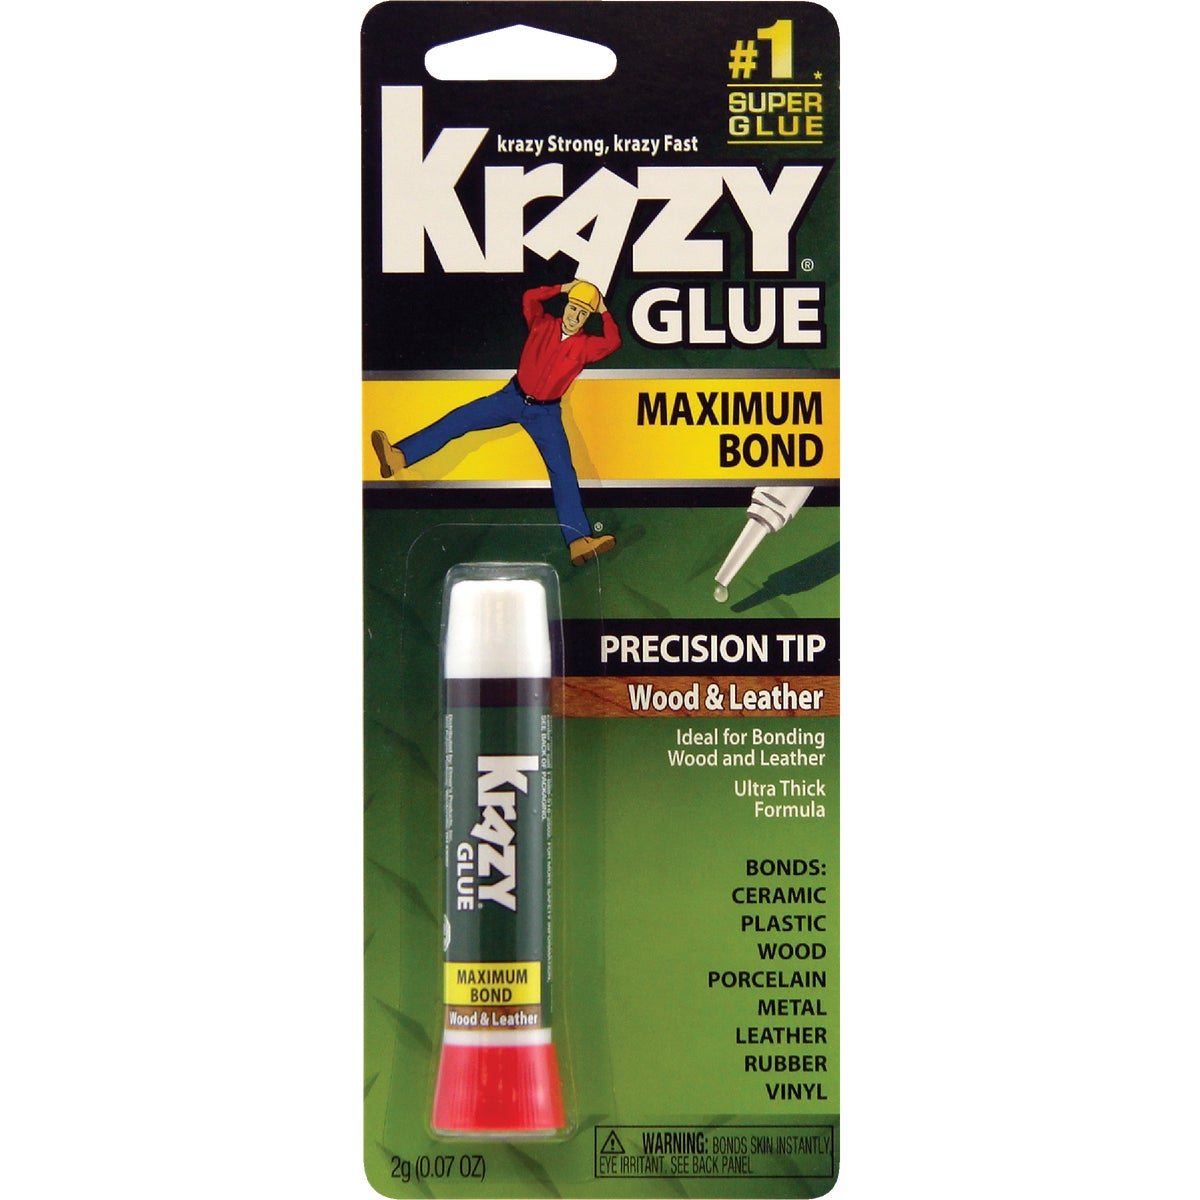 2GM KRAZY GLUE - KG82148R by Elmers Products Inc